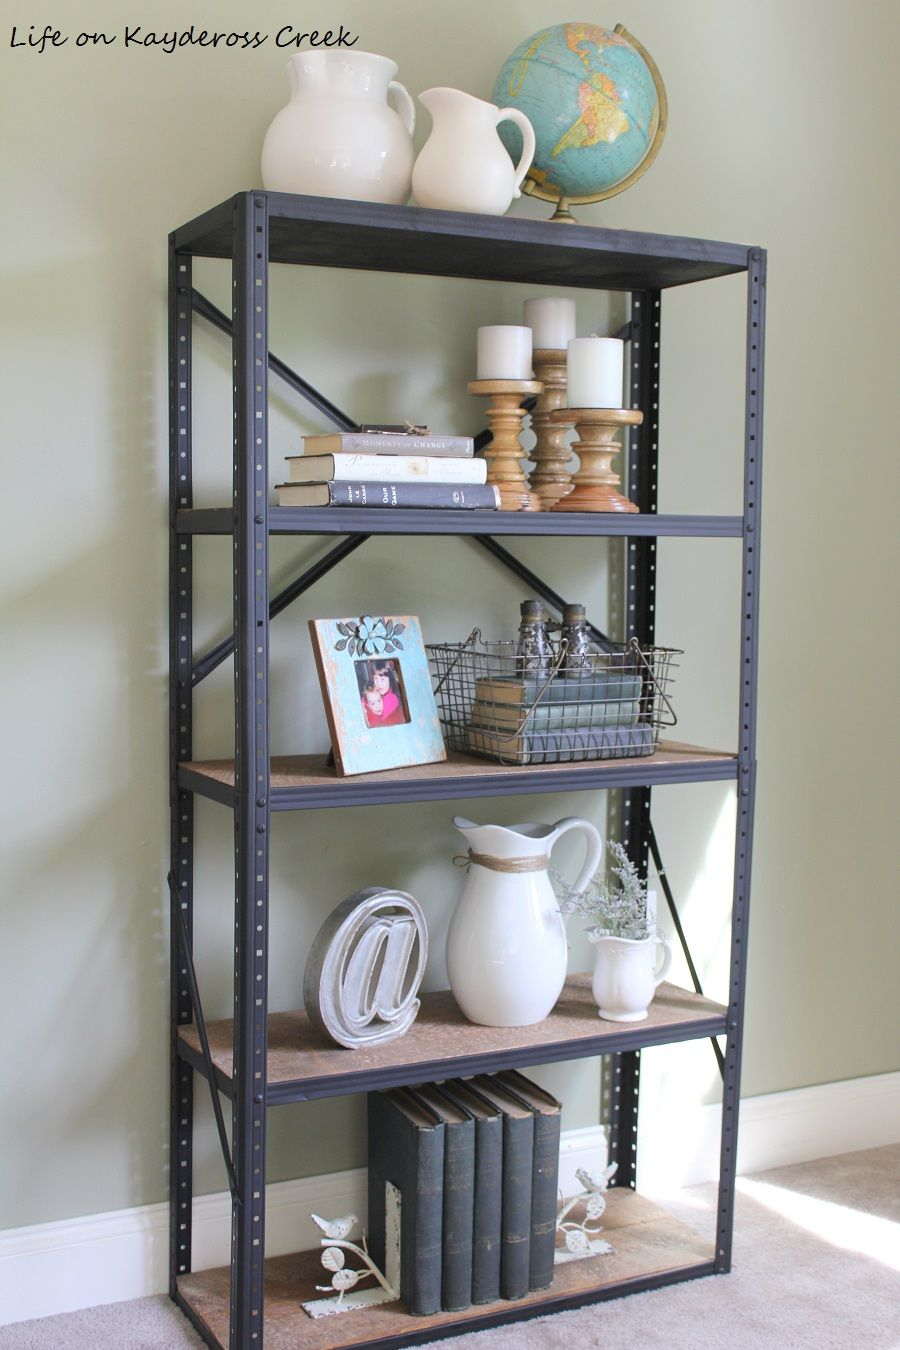 How to create an industrial book shelf from an old metal shelving ...